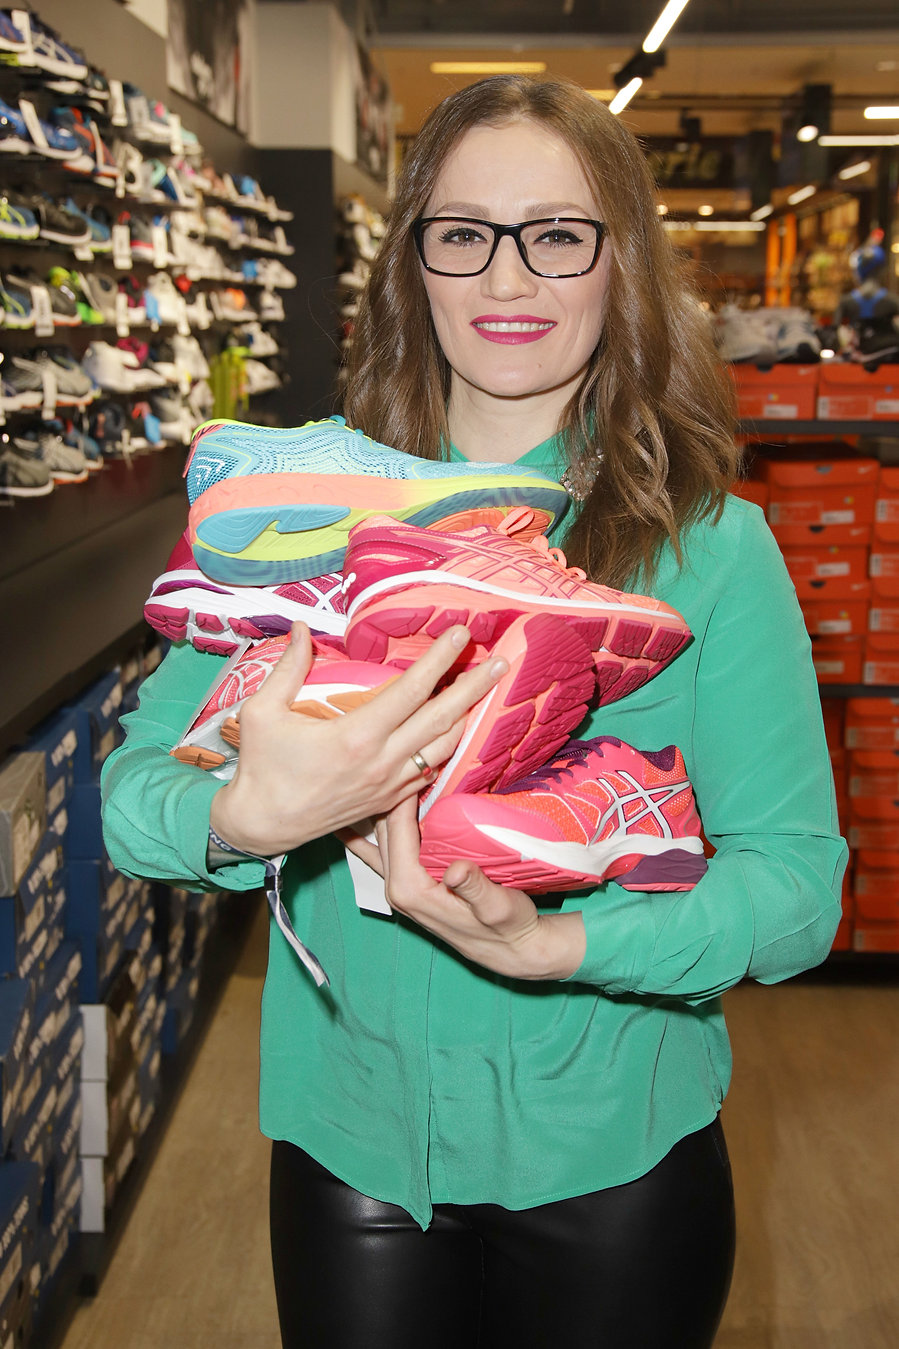 Ina Menzer beim Late Night Shopping in d